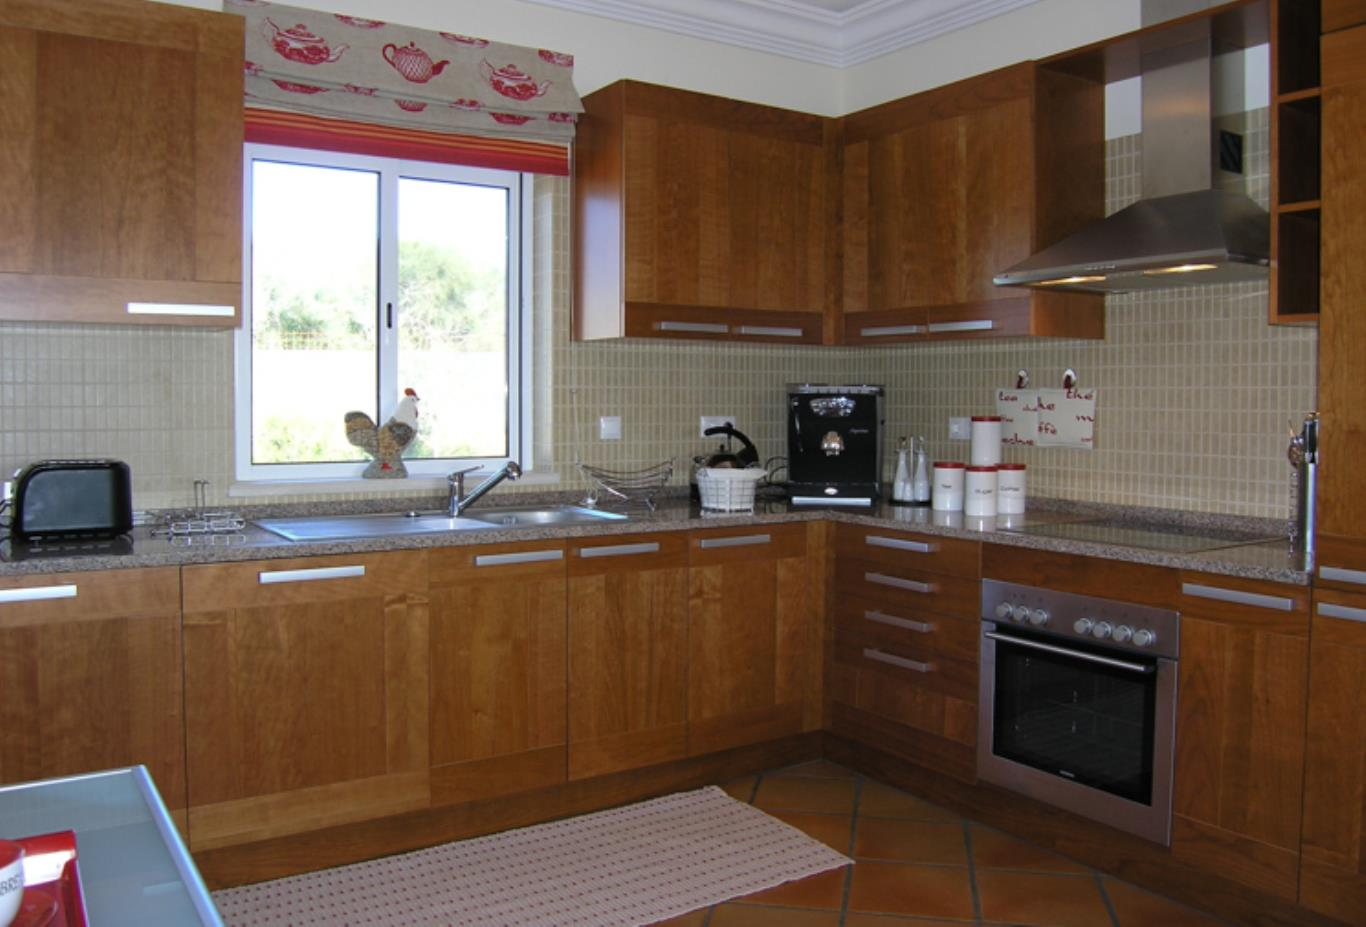 Villa 1 kitchen